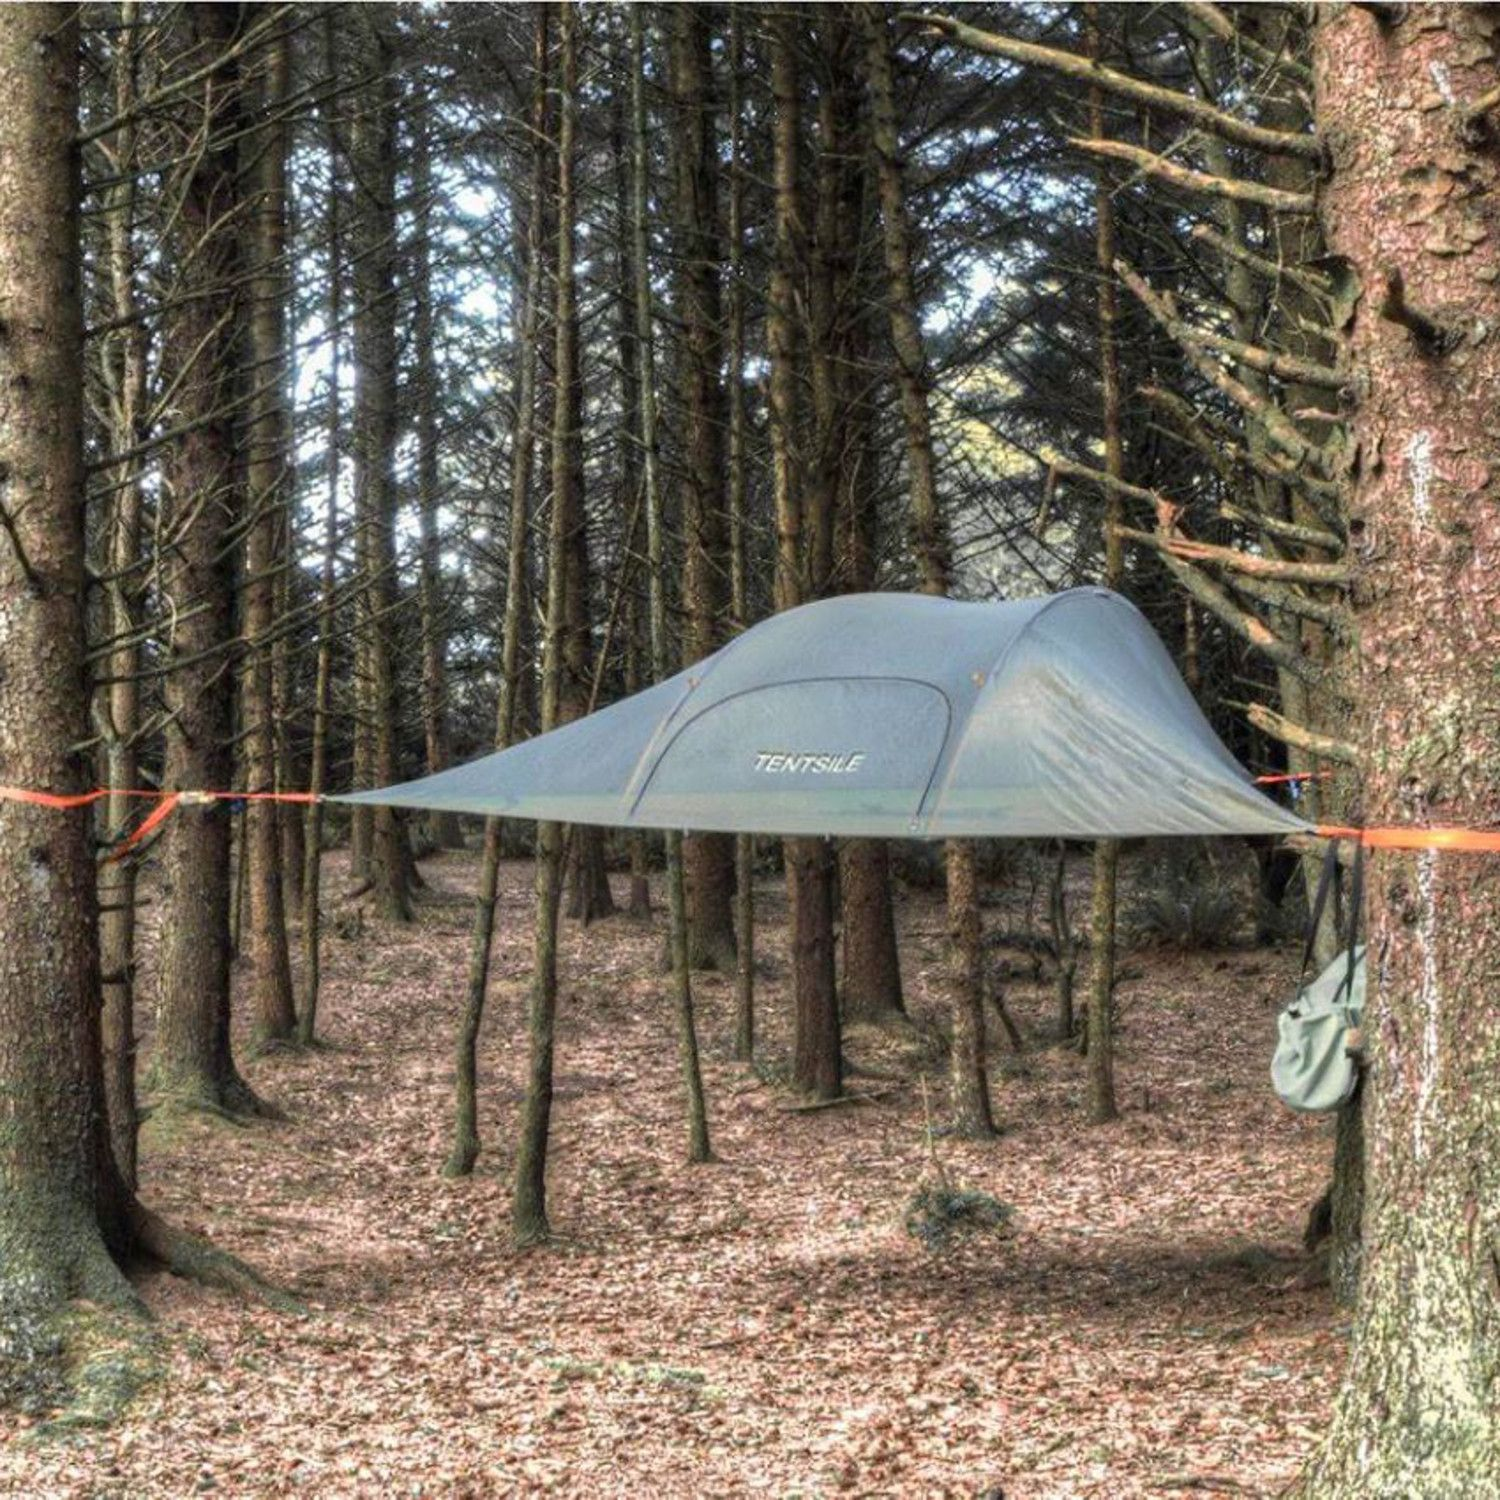 The Tentsile Stingray is a three person tree tent (a.k.a. portable treehouse) that offers & The Tentsile Stingray is a three person tree tent (a.k.a. portable ...